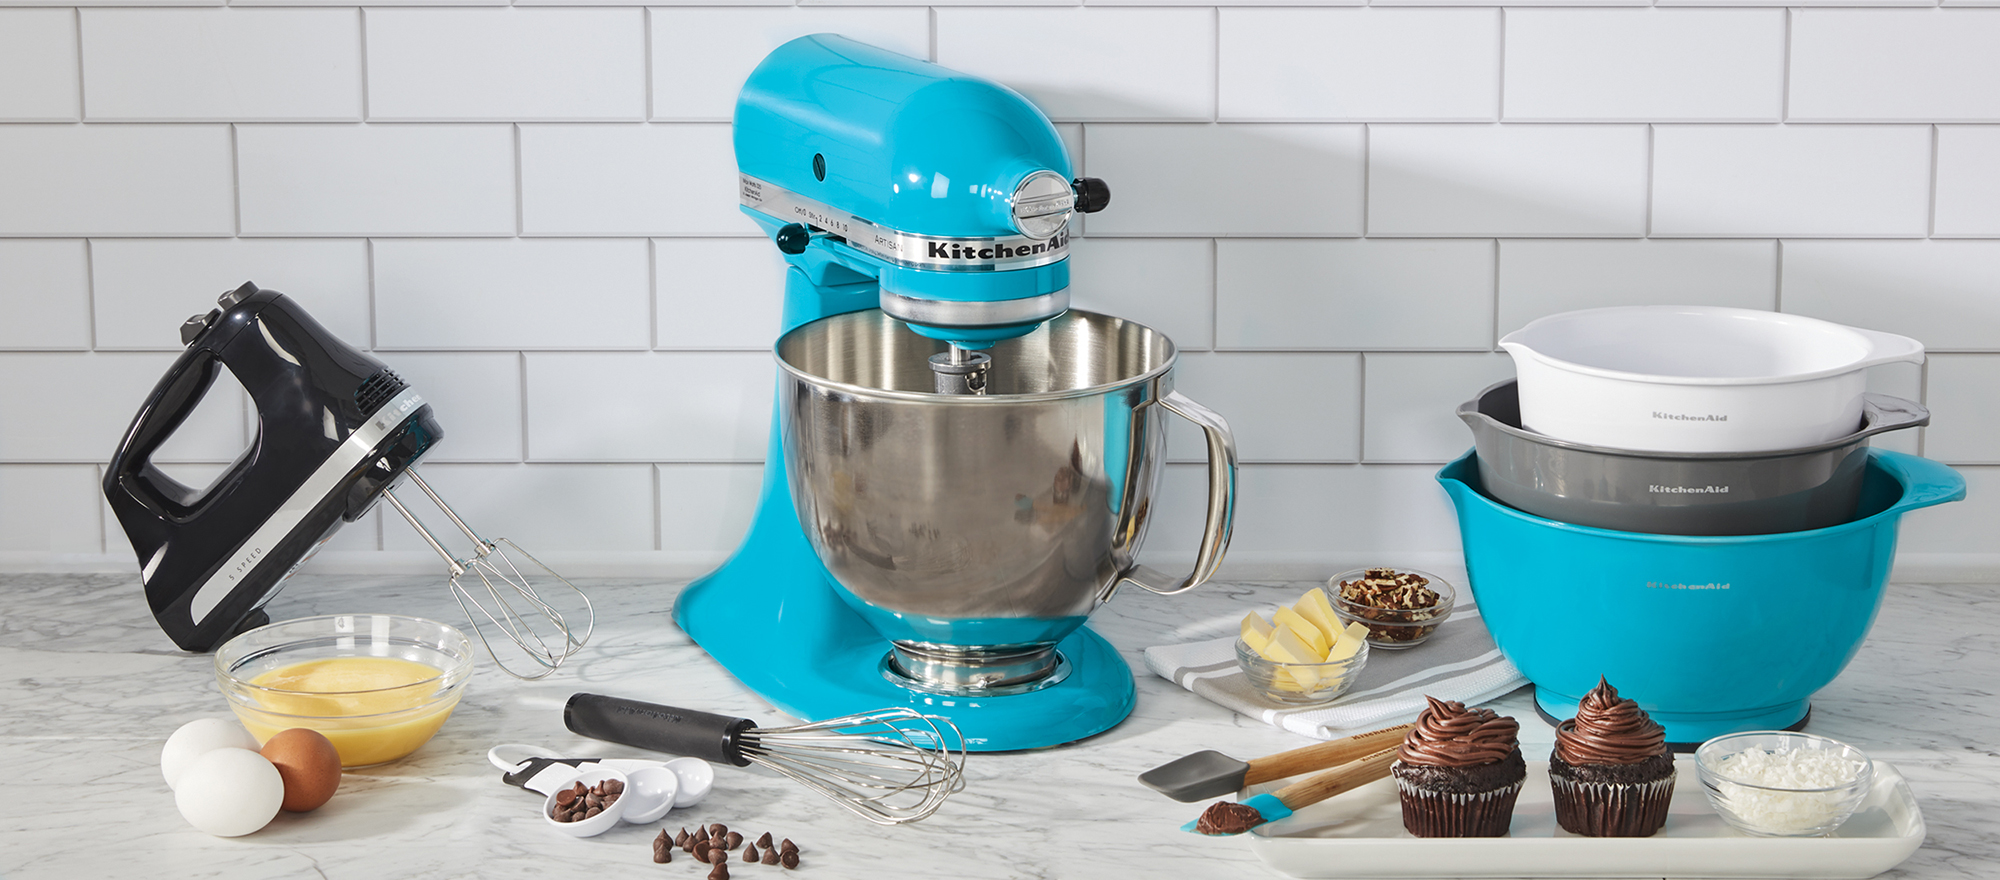 Kitchenaid Collection At Walmart Launches New Kitchen Tools Real